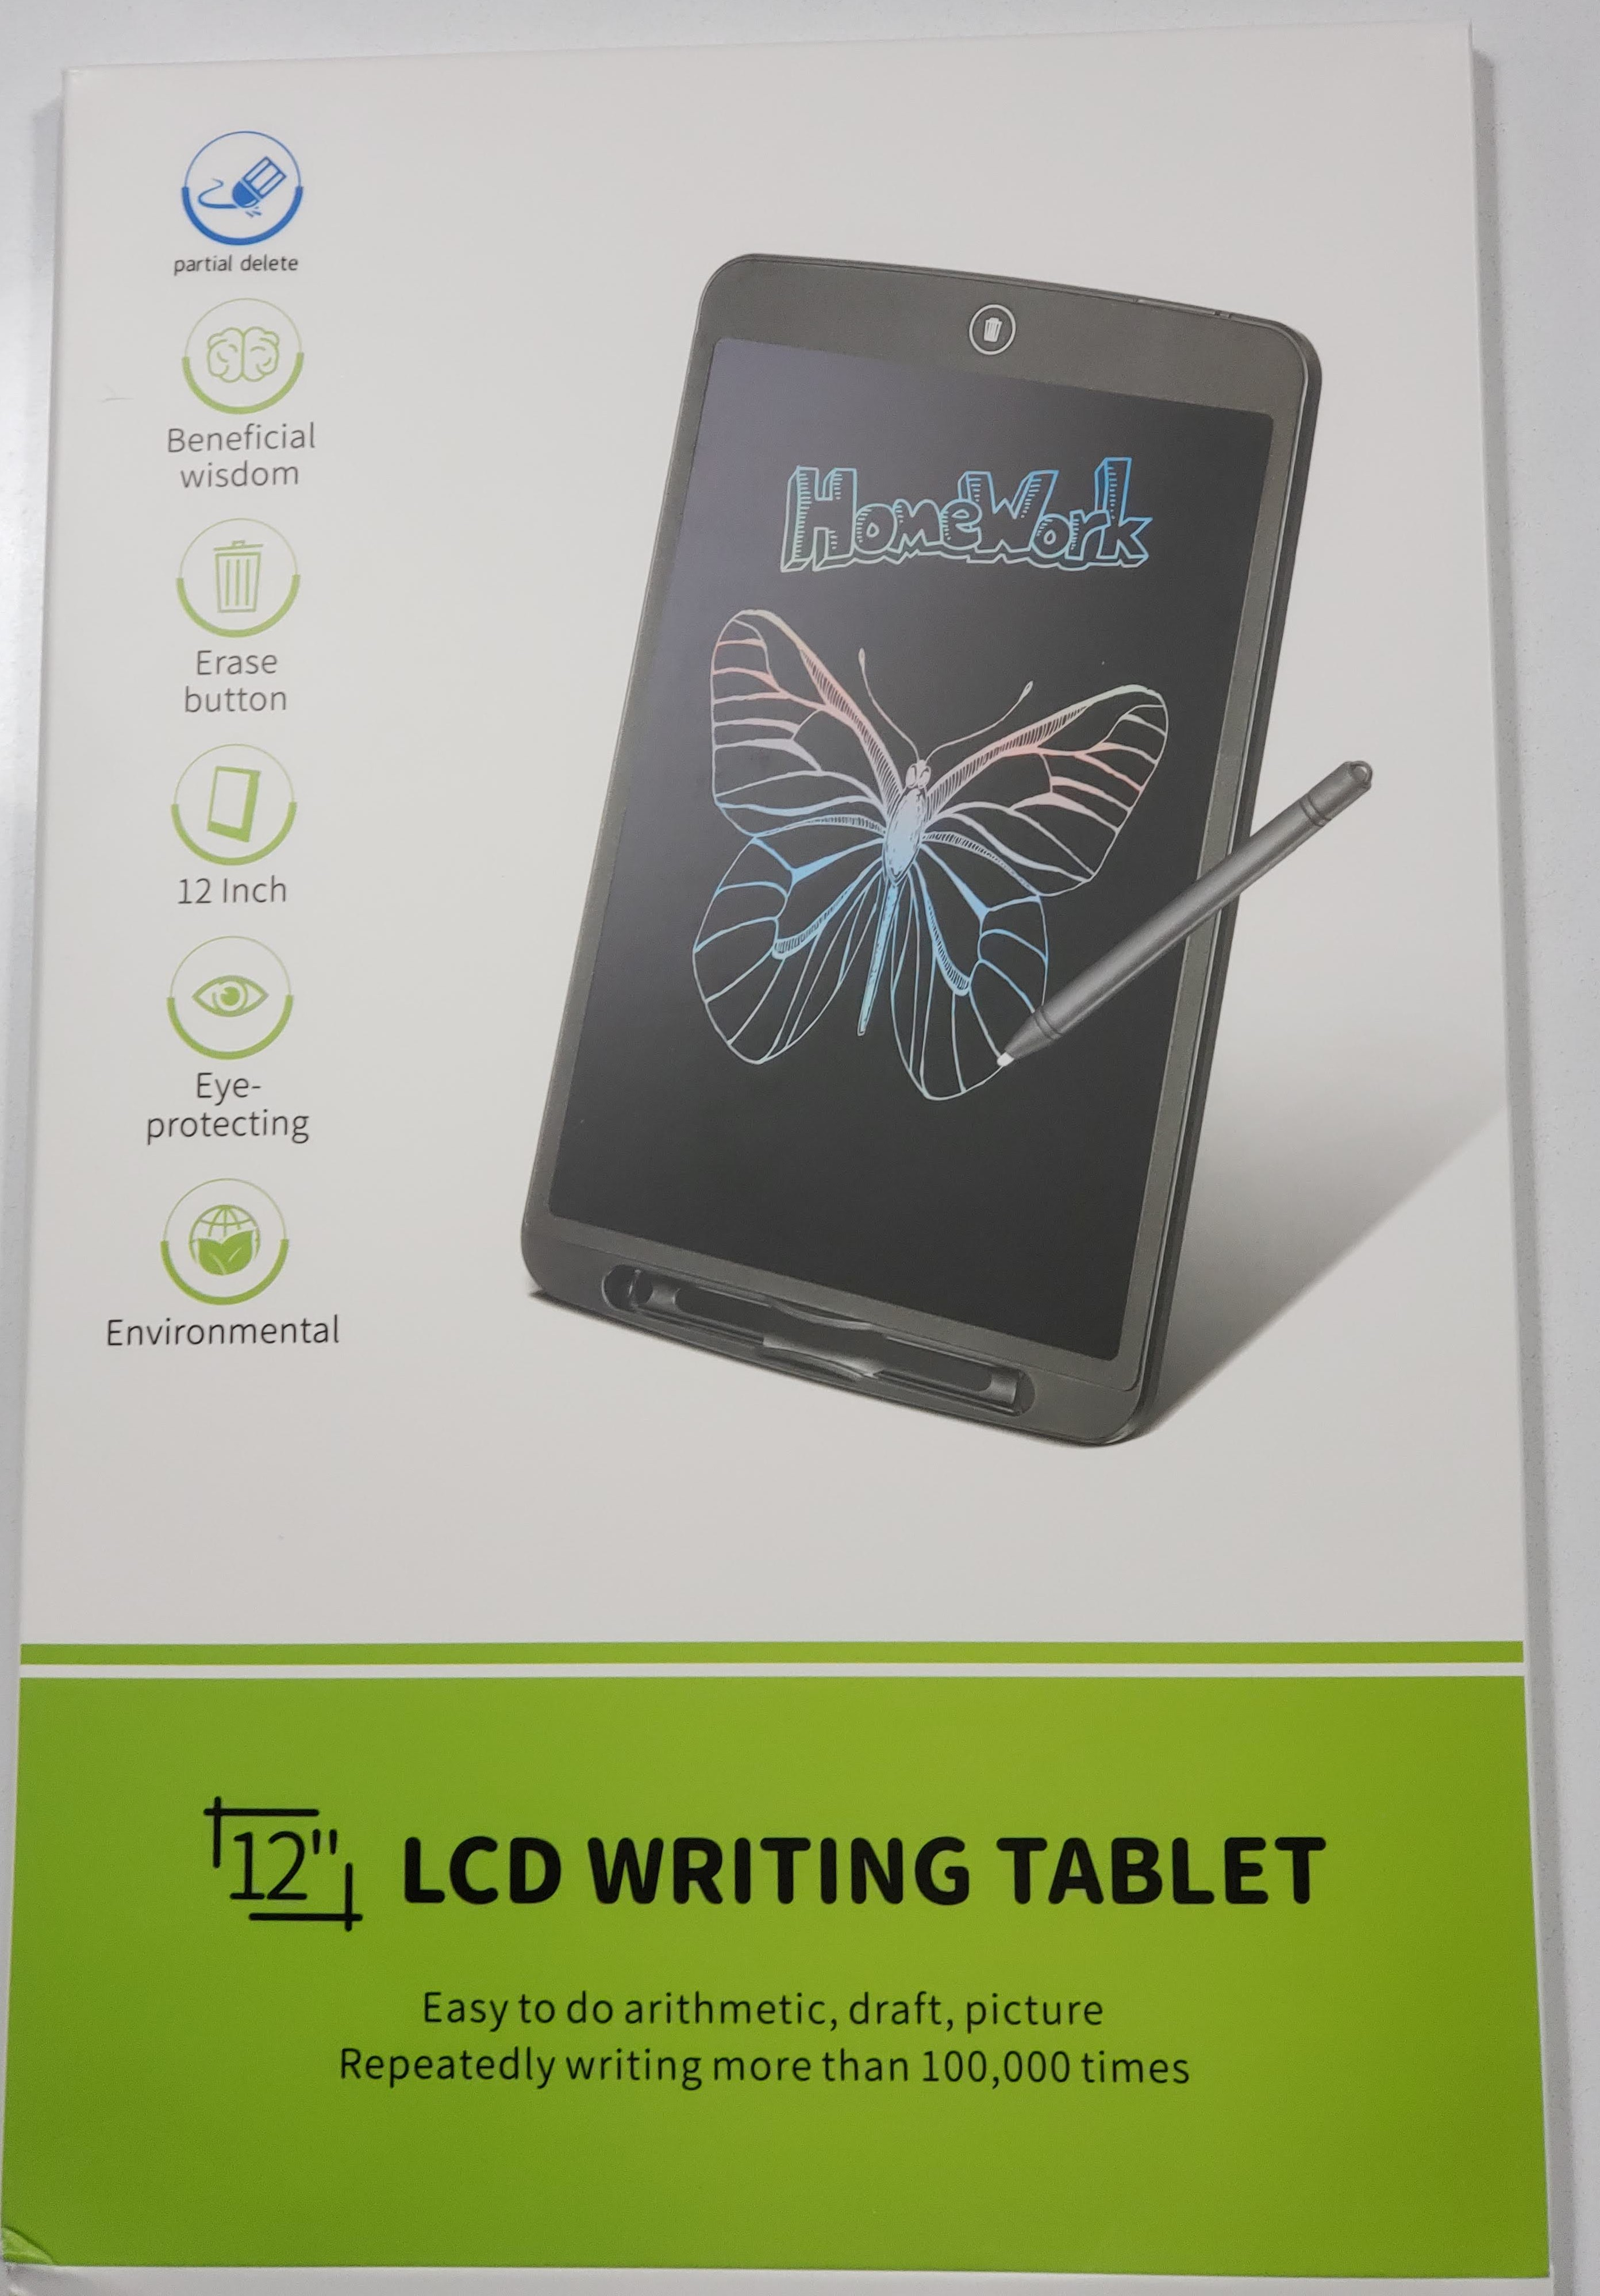 gazechimp 12 Inch LCD Handwriting Tablet Digital Pad Drawing Tablet with Touch Pen